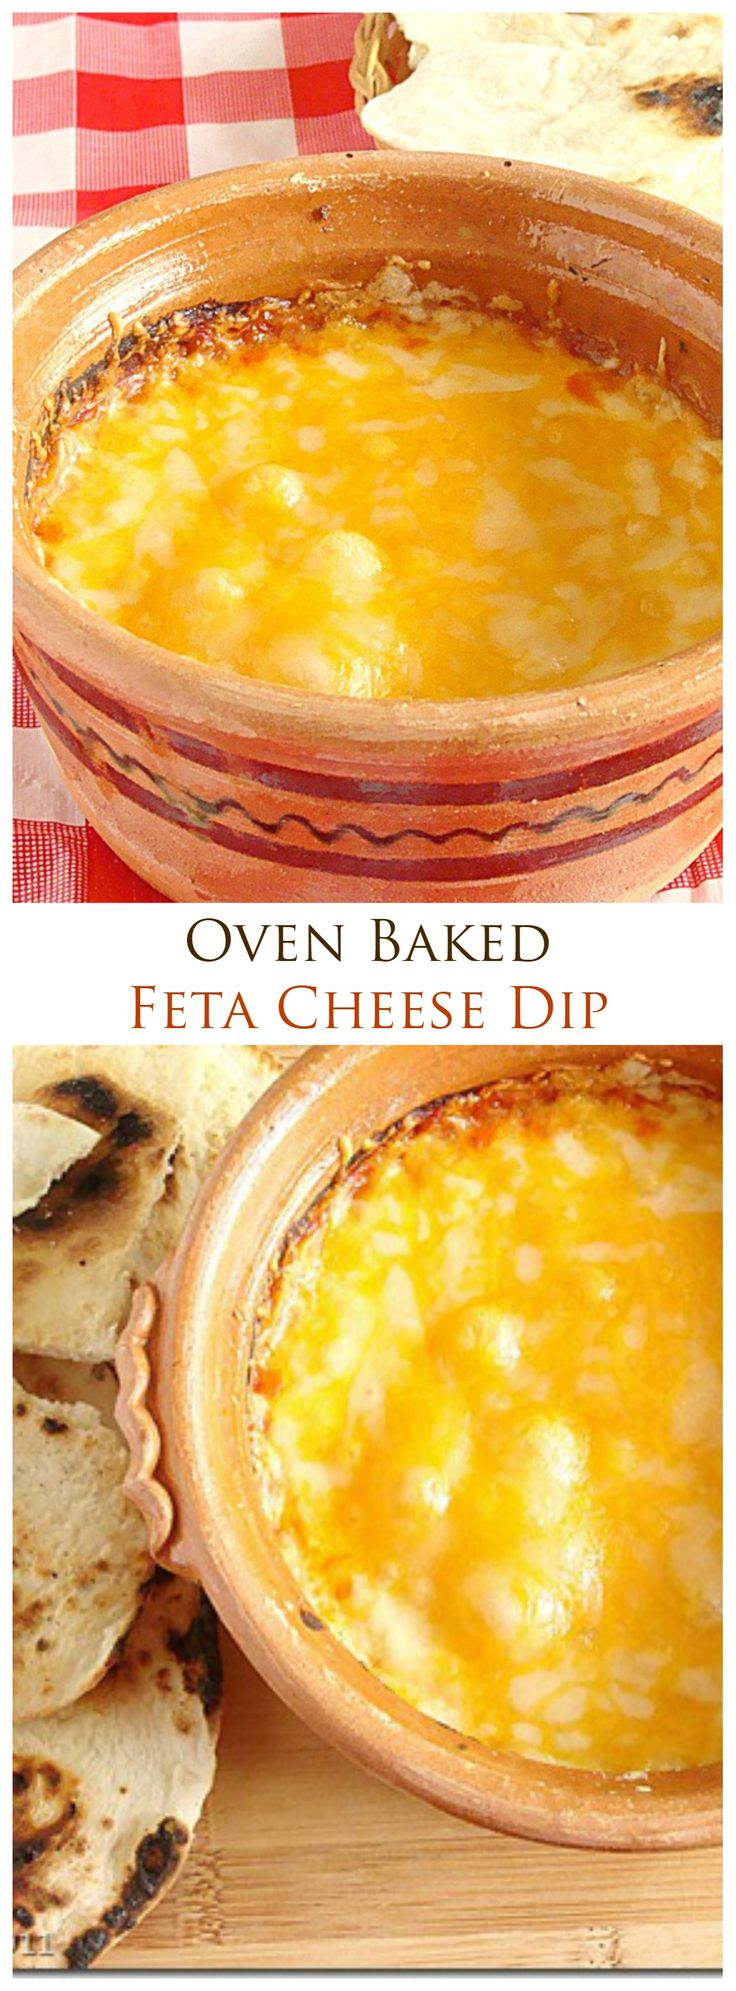 Warm Feta Cheese Dip | www.diethood.com | The best cheese dip, ever! #recipes #appetizers